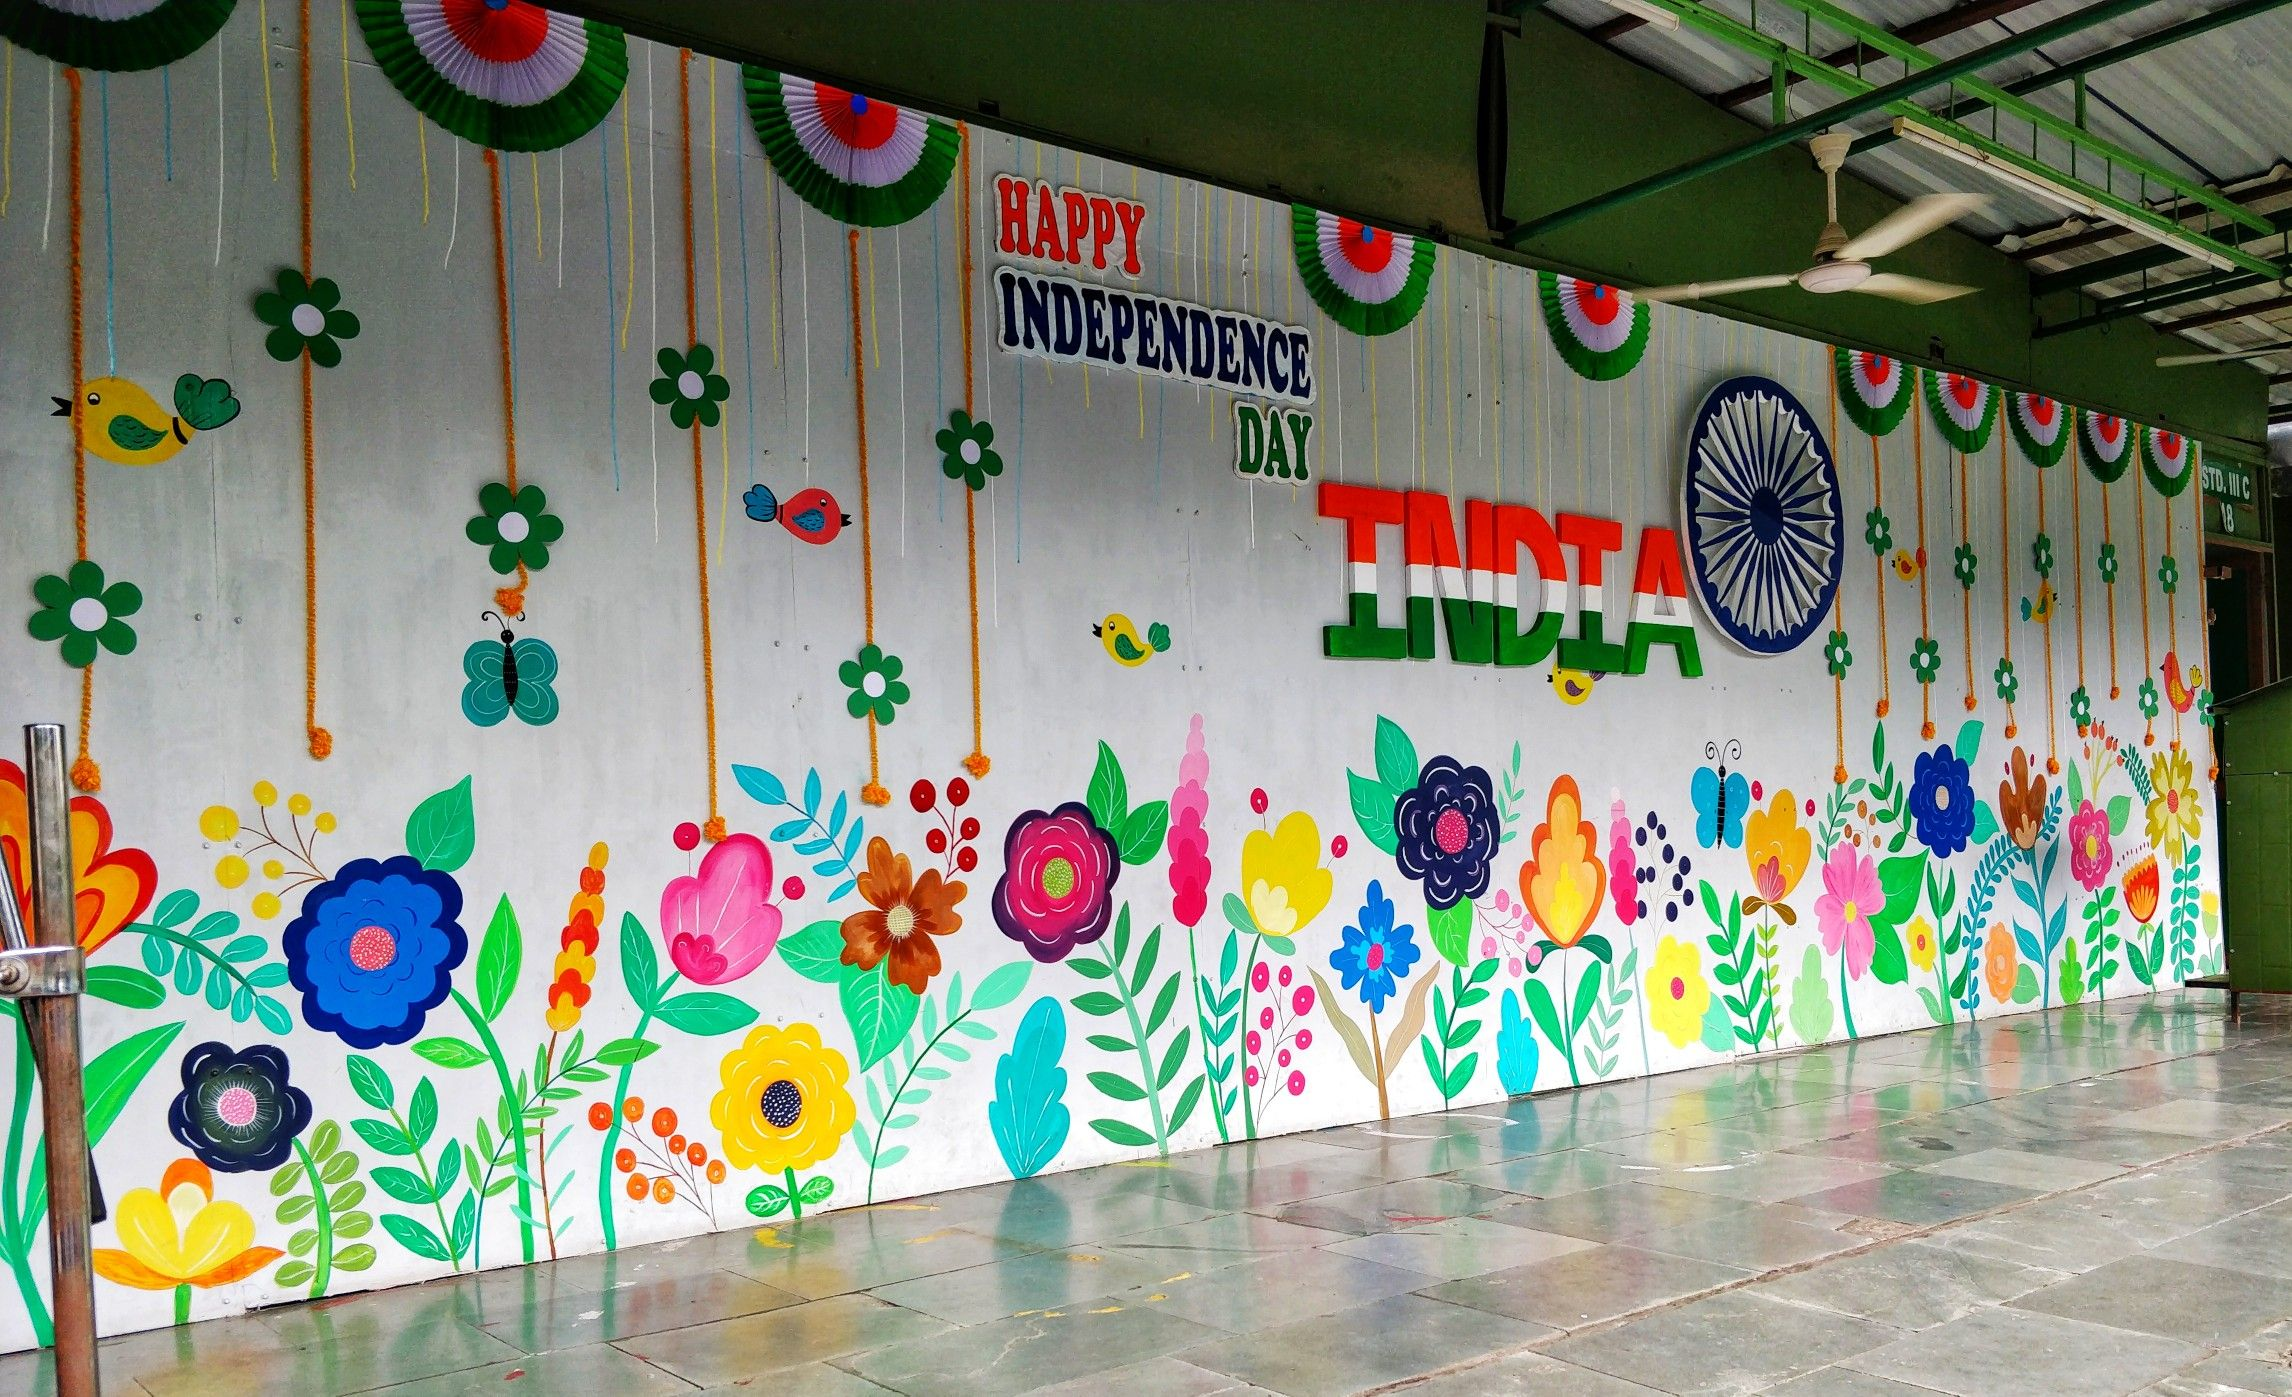 Independence Day India 2019 Independence Day Celebration Independence Day Decoration Stage Decorations Stage School Art Worksheets